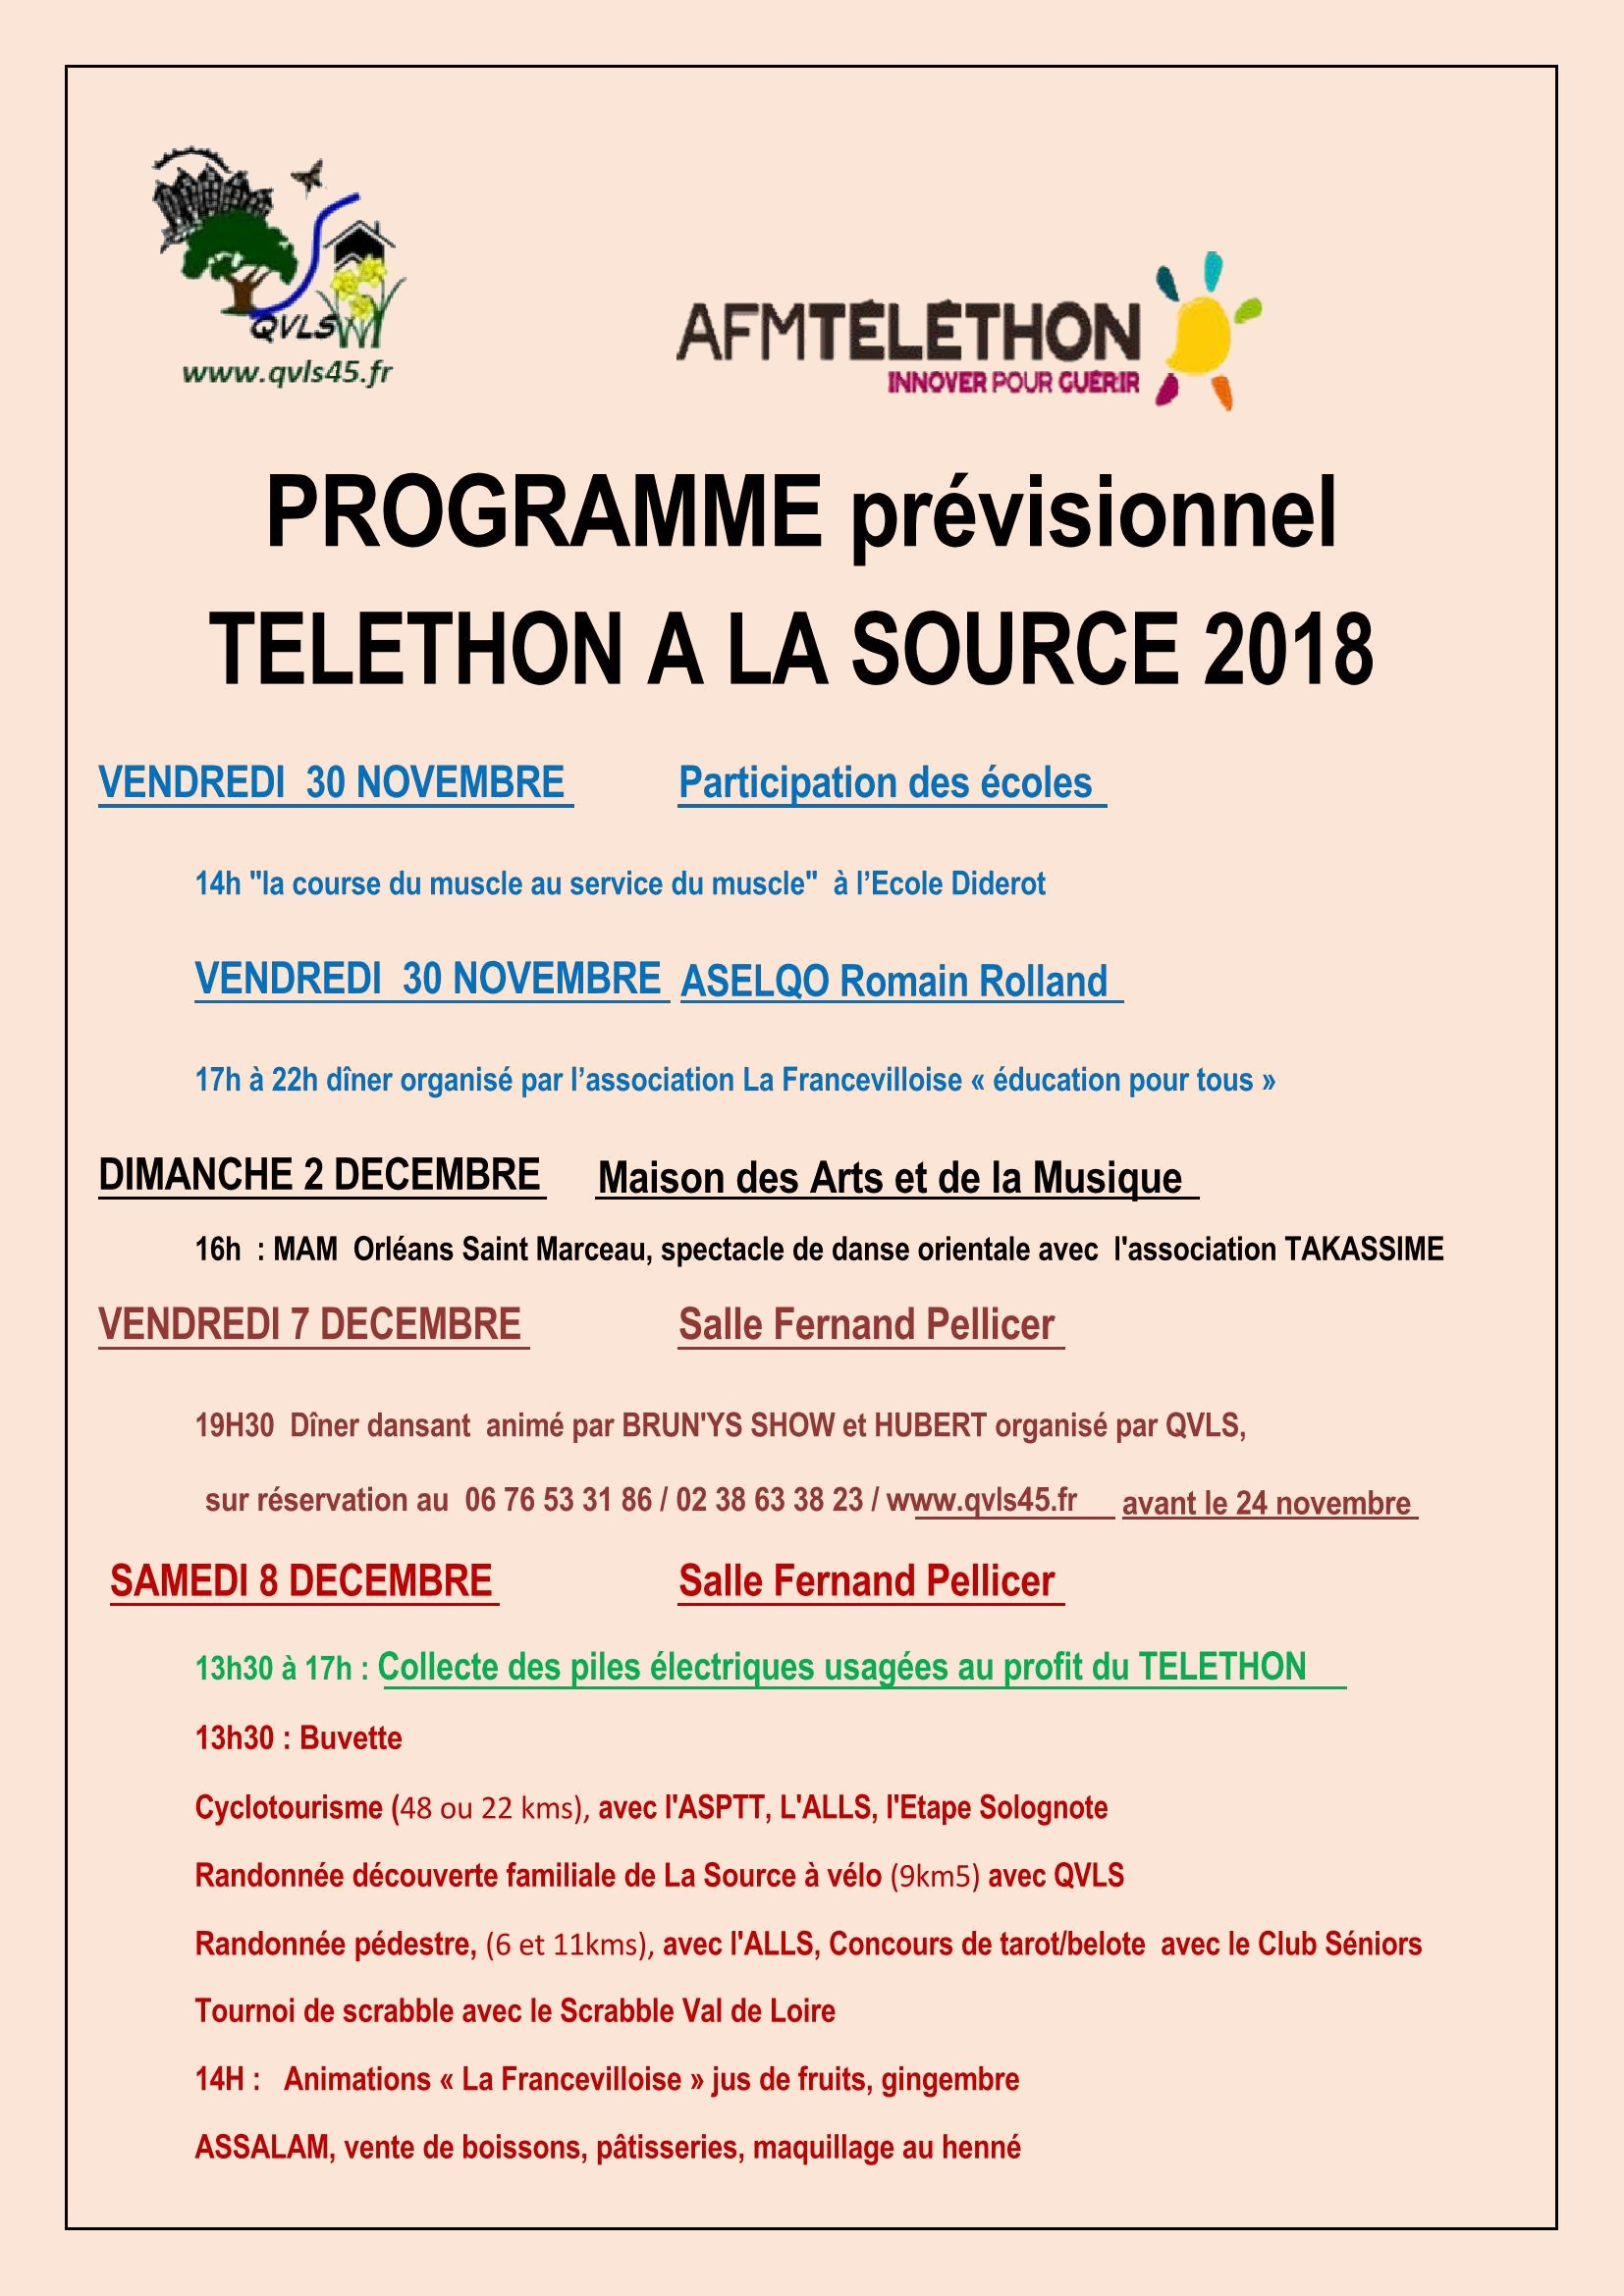 PROGRAMME_TELETHON__2018_actualisee_claude_Page_1.jpeg